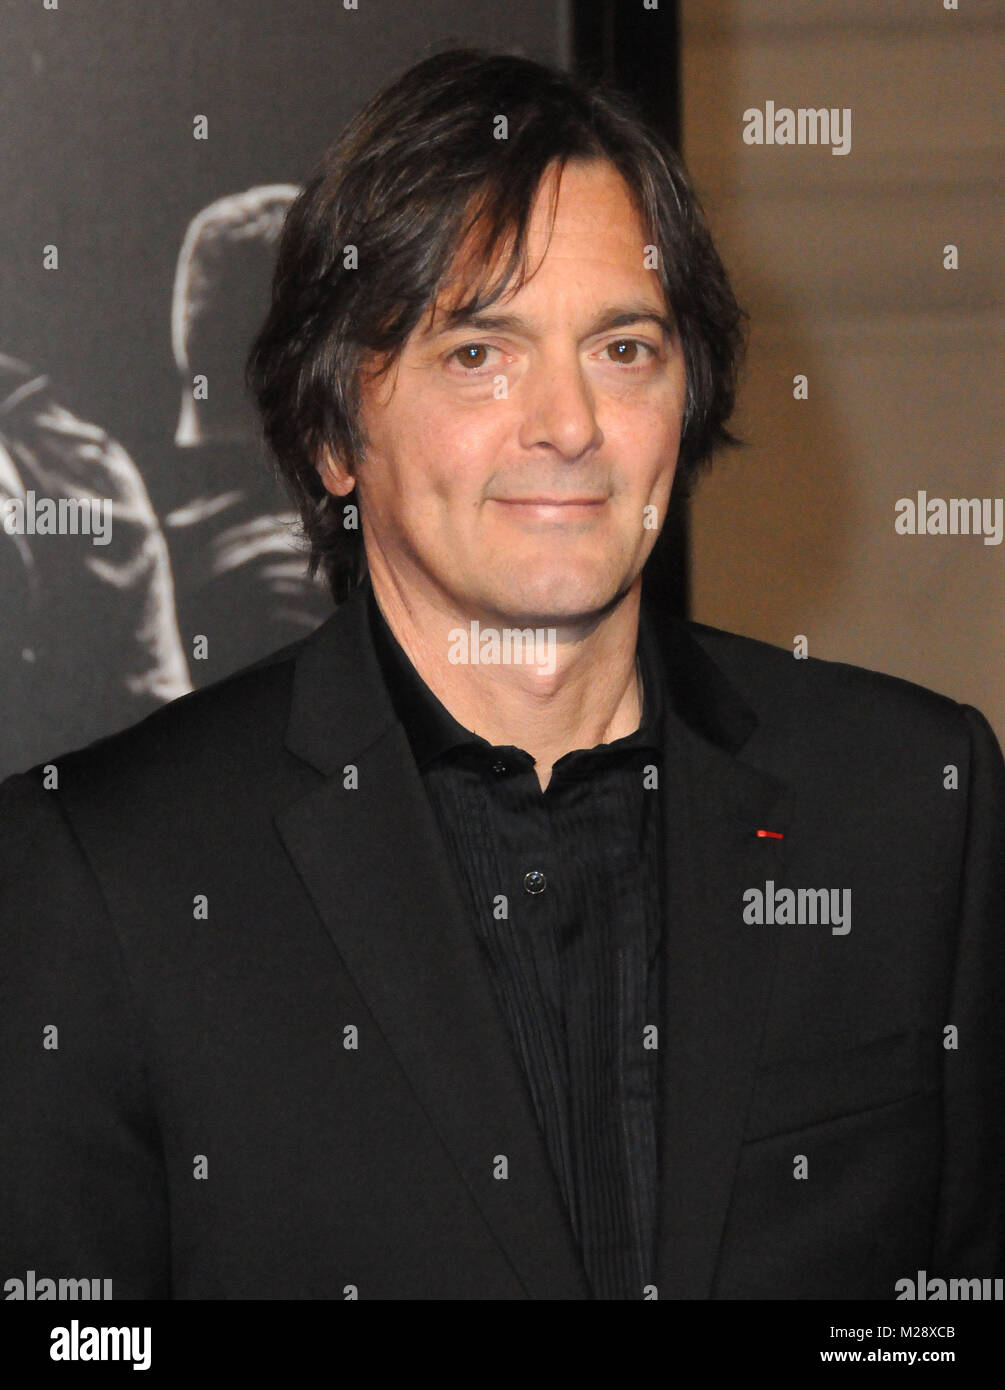 Burbank, California, USA. 5th February, 2018. Mark Moogalian attends the World Premiere of 'The 15:17 To Paris' at Warner Bros. Studios, SJR Theater on February 5, 2018 in Burbank, California. Photo by Barry King/Alamy Live News Stock Photo